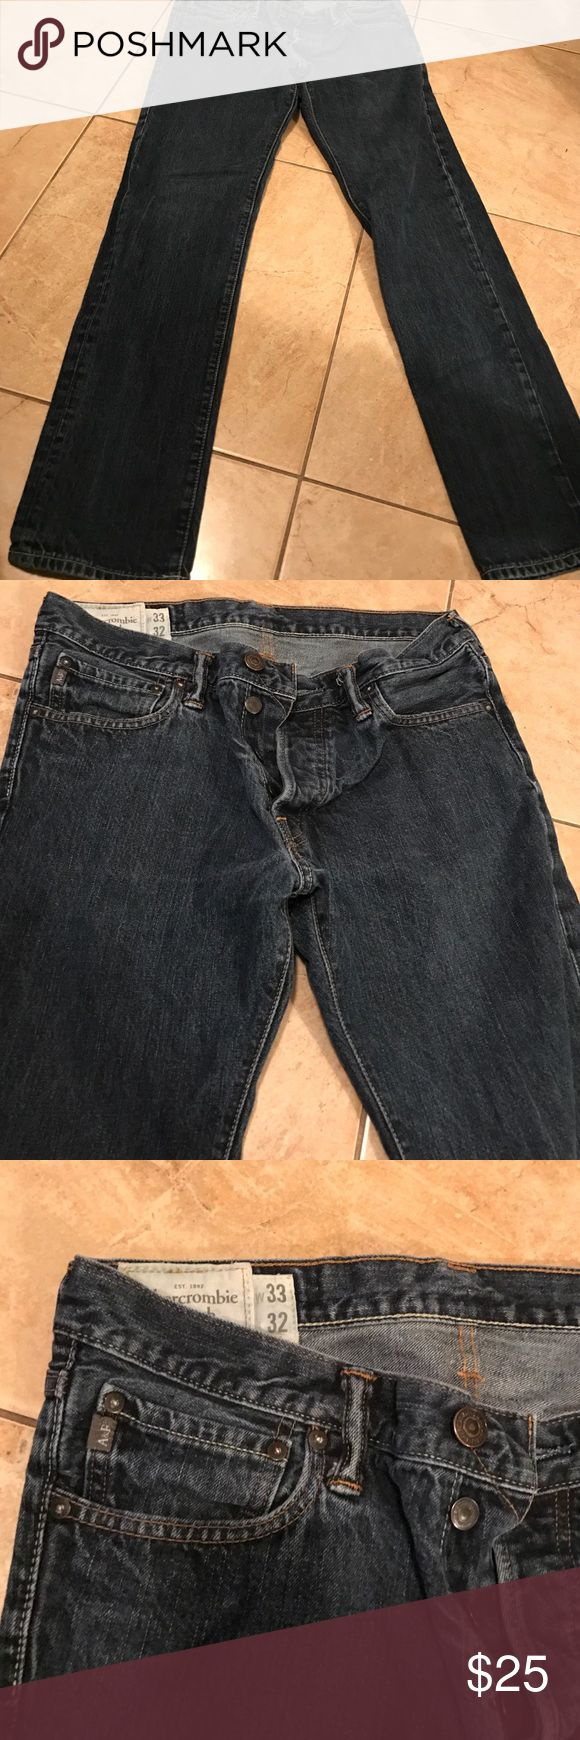 Men's Abercrombie and fitch jeans 33 x 32 Men's Abercrombie and fitch jeans 33 x 32 Abercrombie & Fitch Jeans